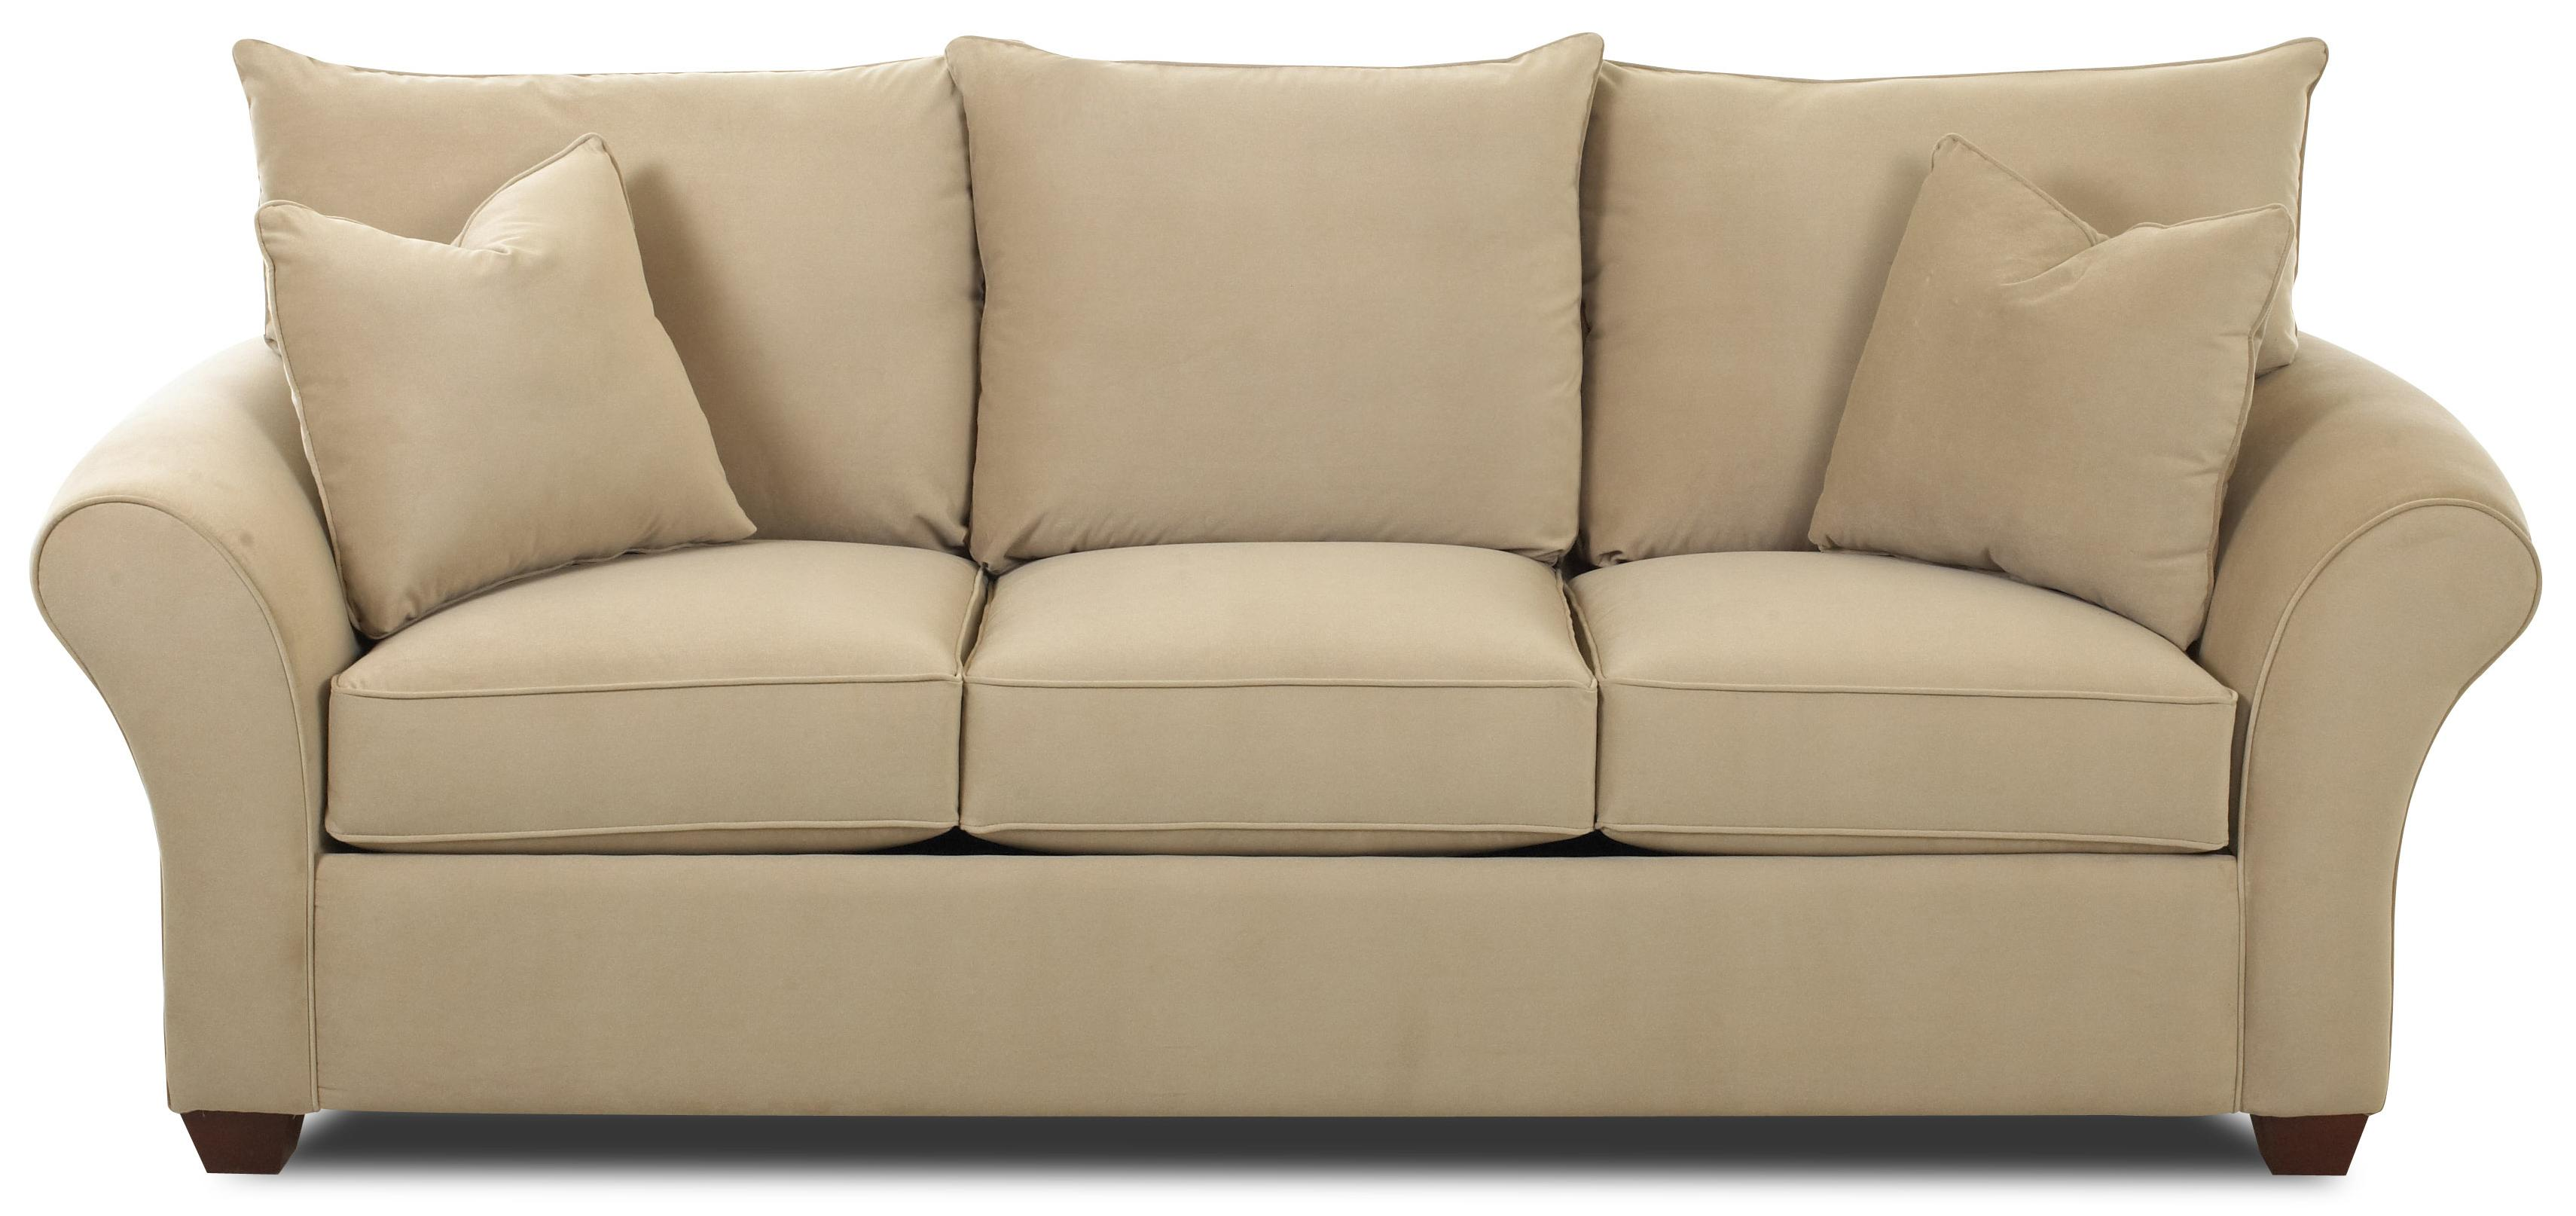 Most Comfortable Couch >> The Most Comfortable Couch | HomesFeed